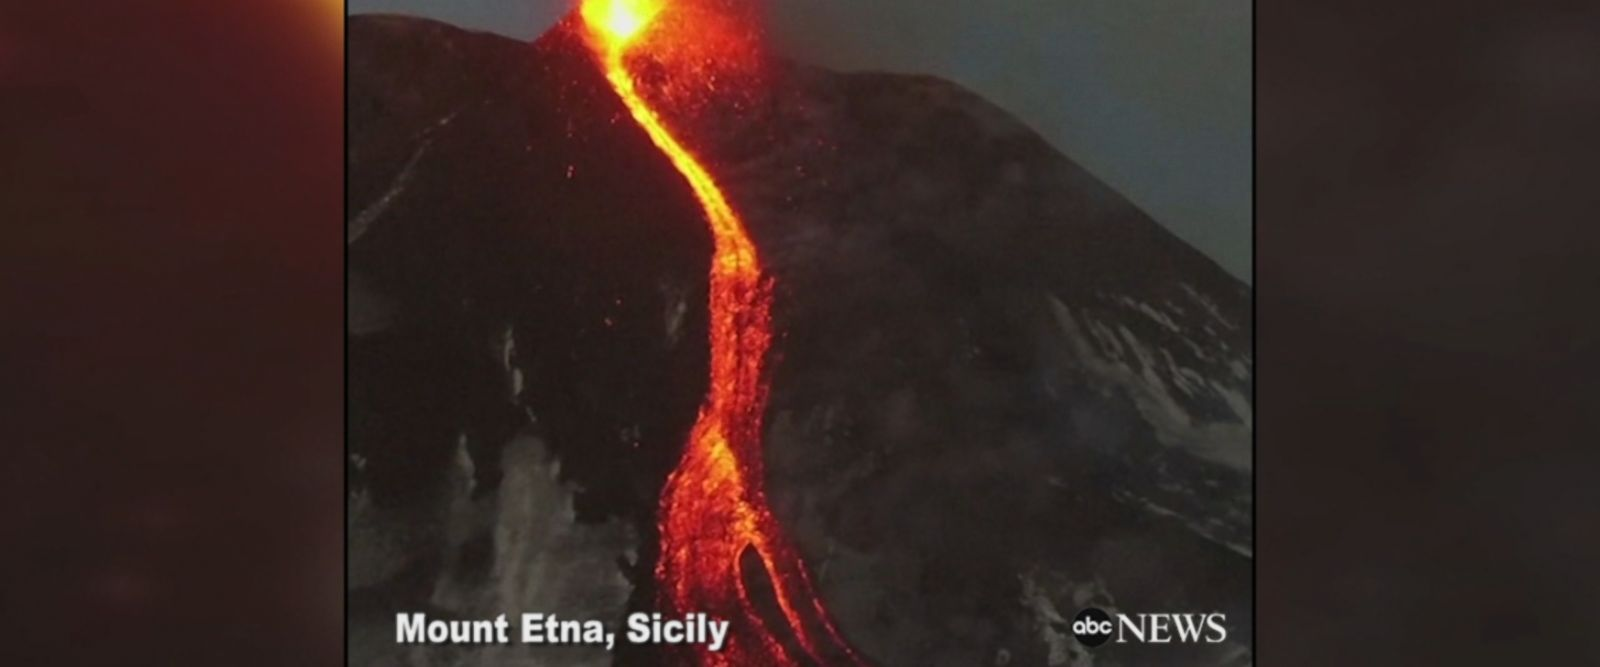 Drone footage captures Mount Etna volcano in Sicily erupting, spewing lava and ash into the sky.